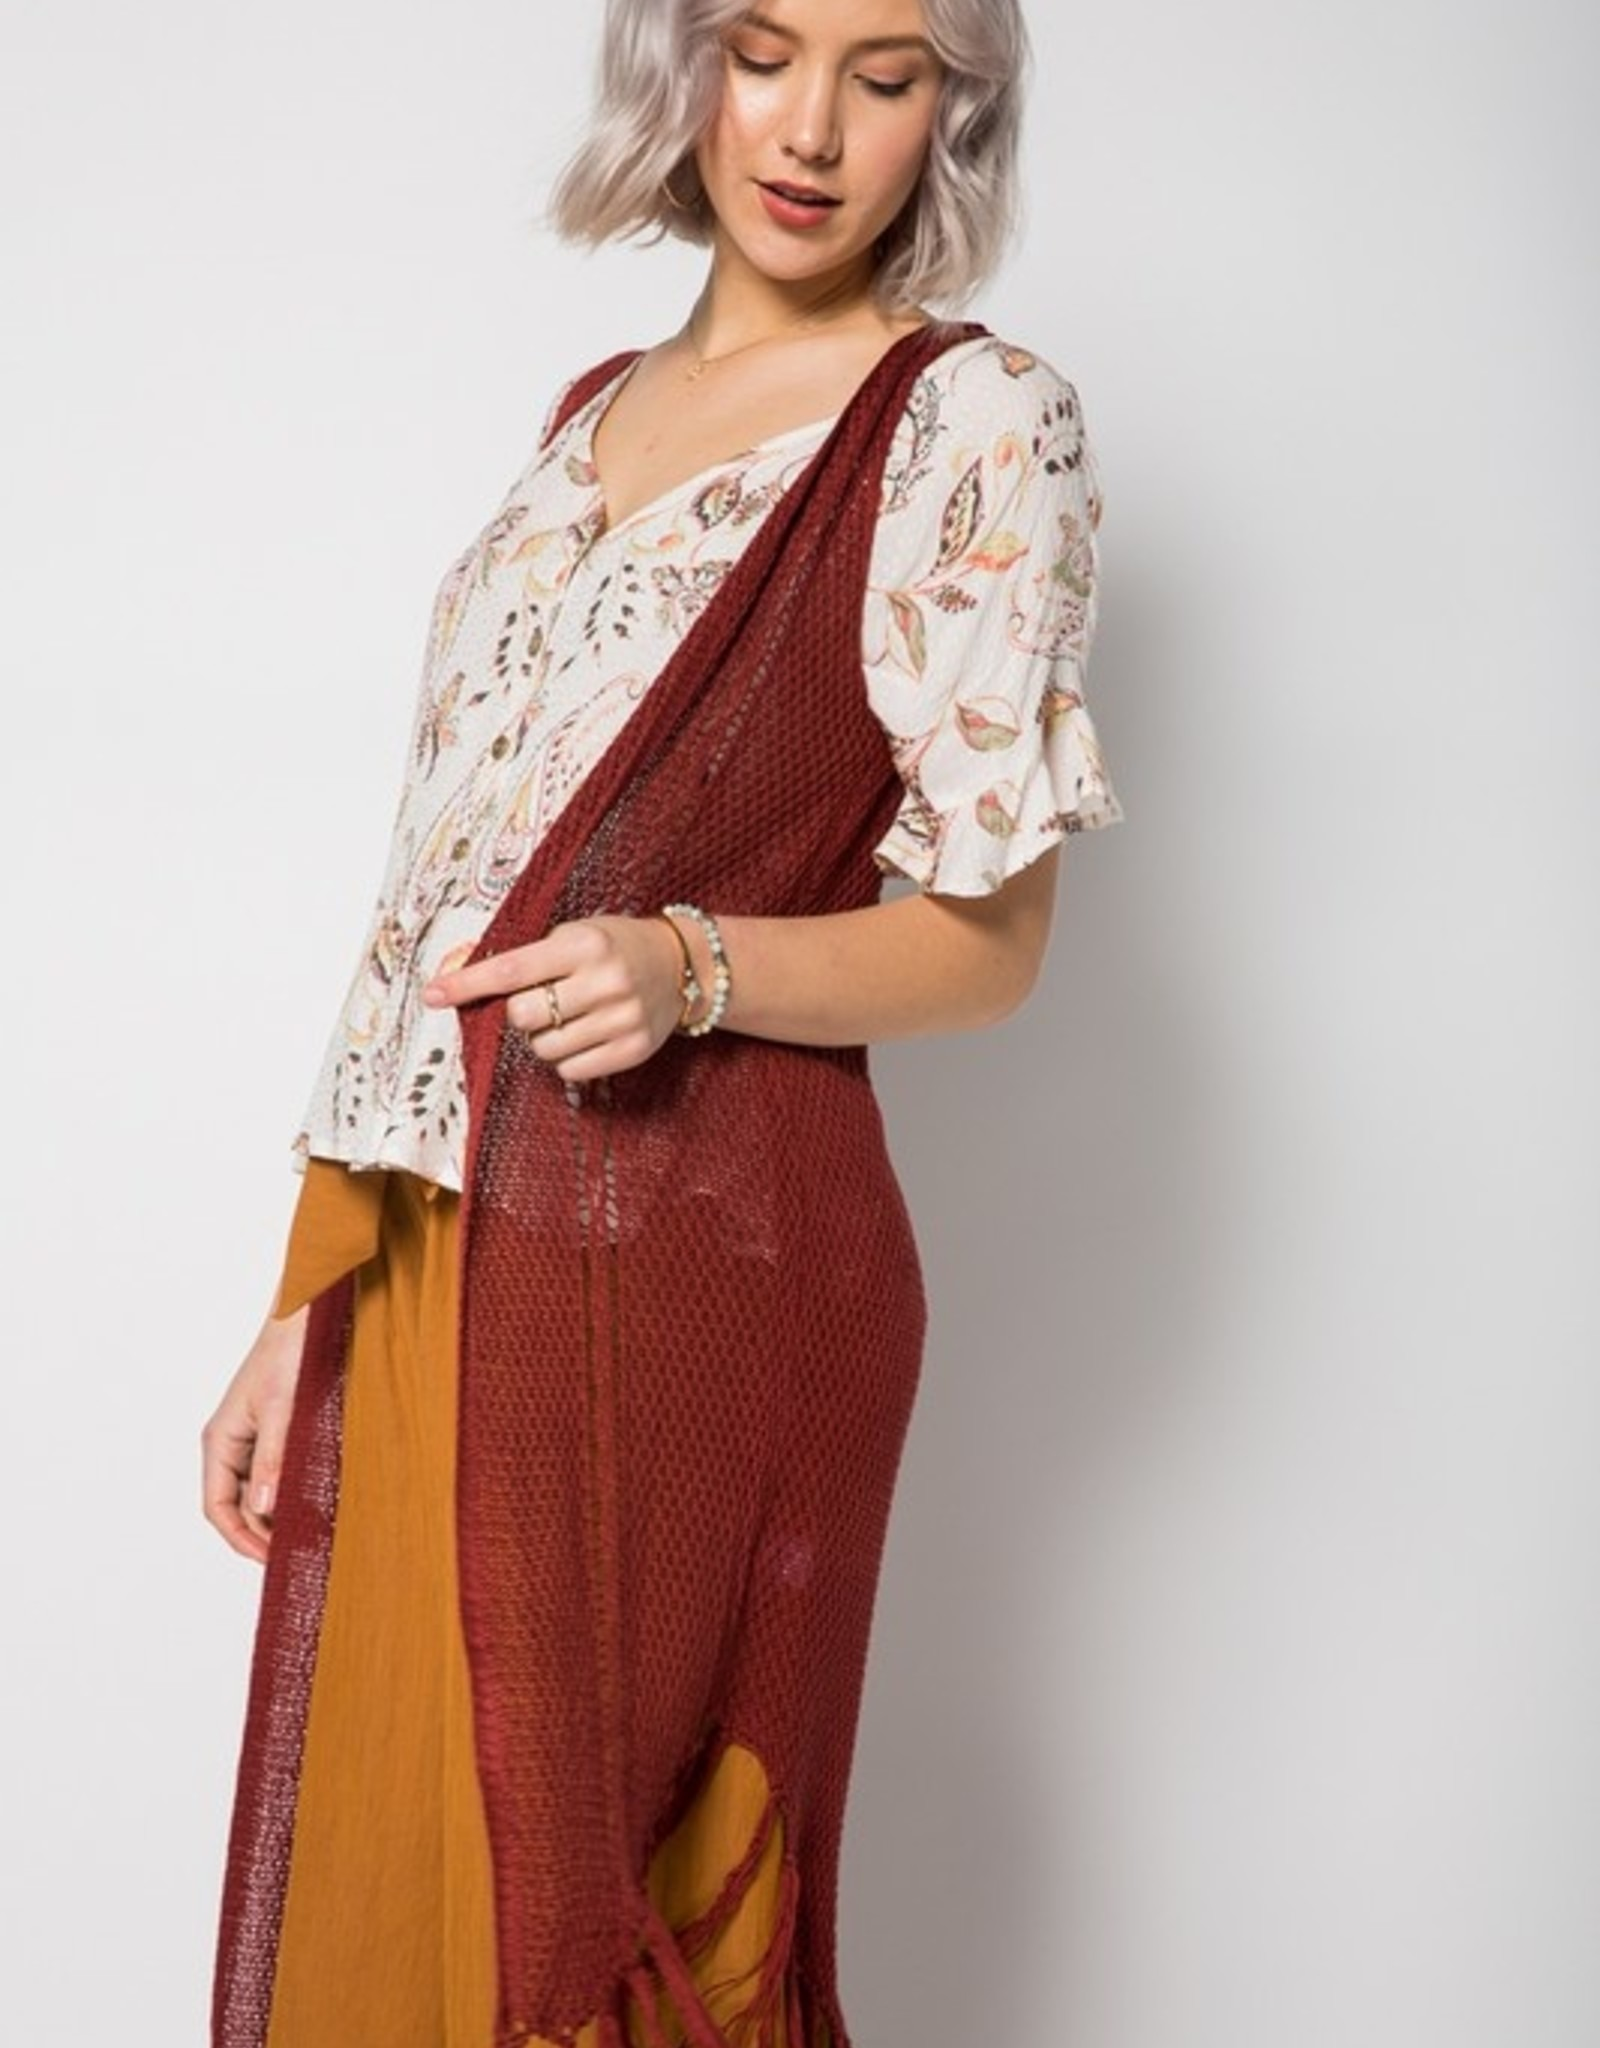 Oleanders Boutique Mahogany Fringe Duster